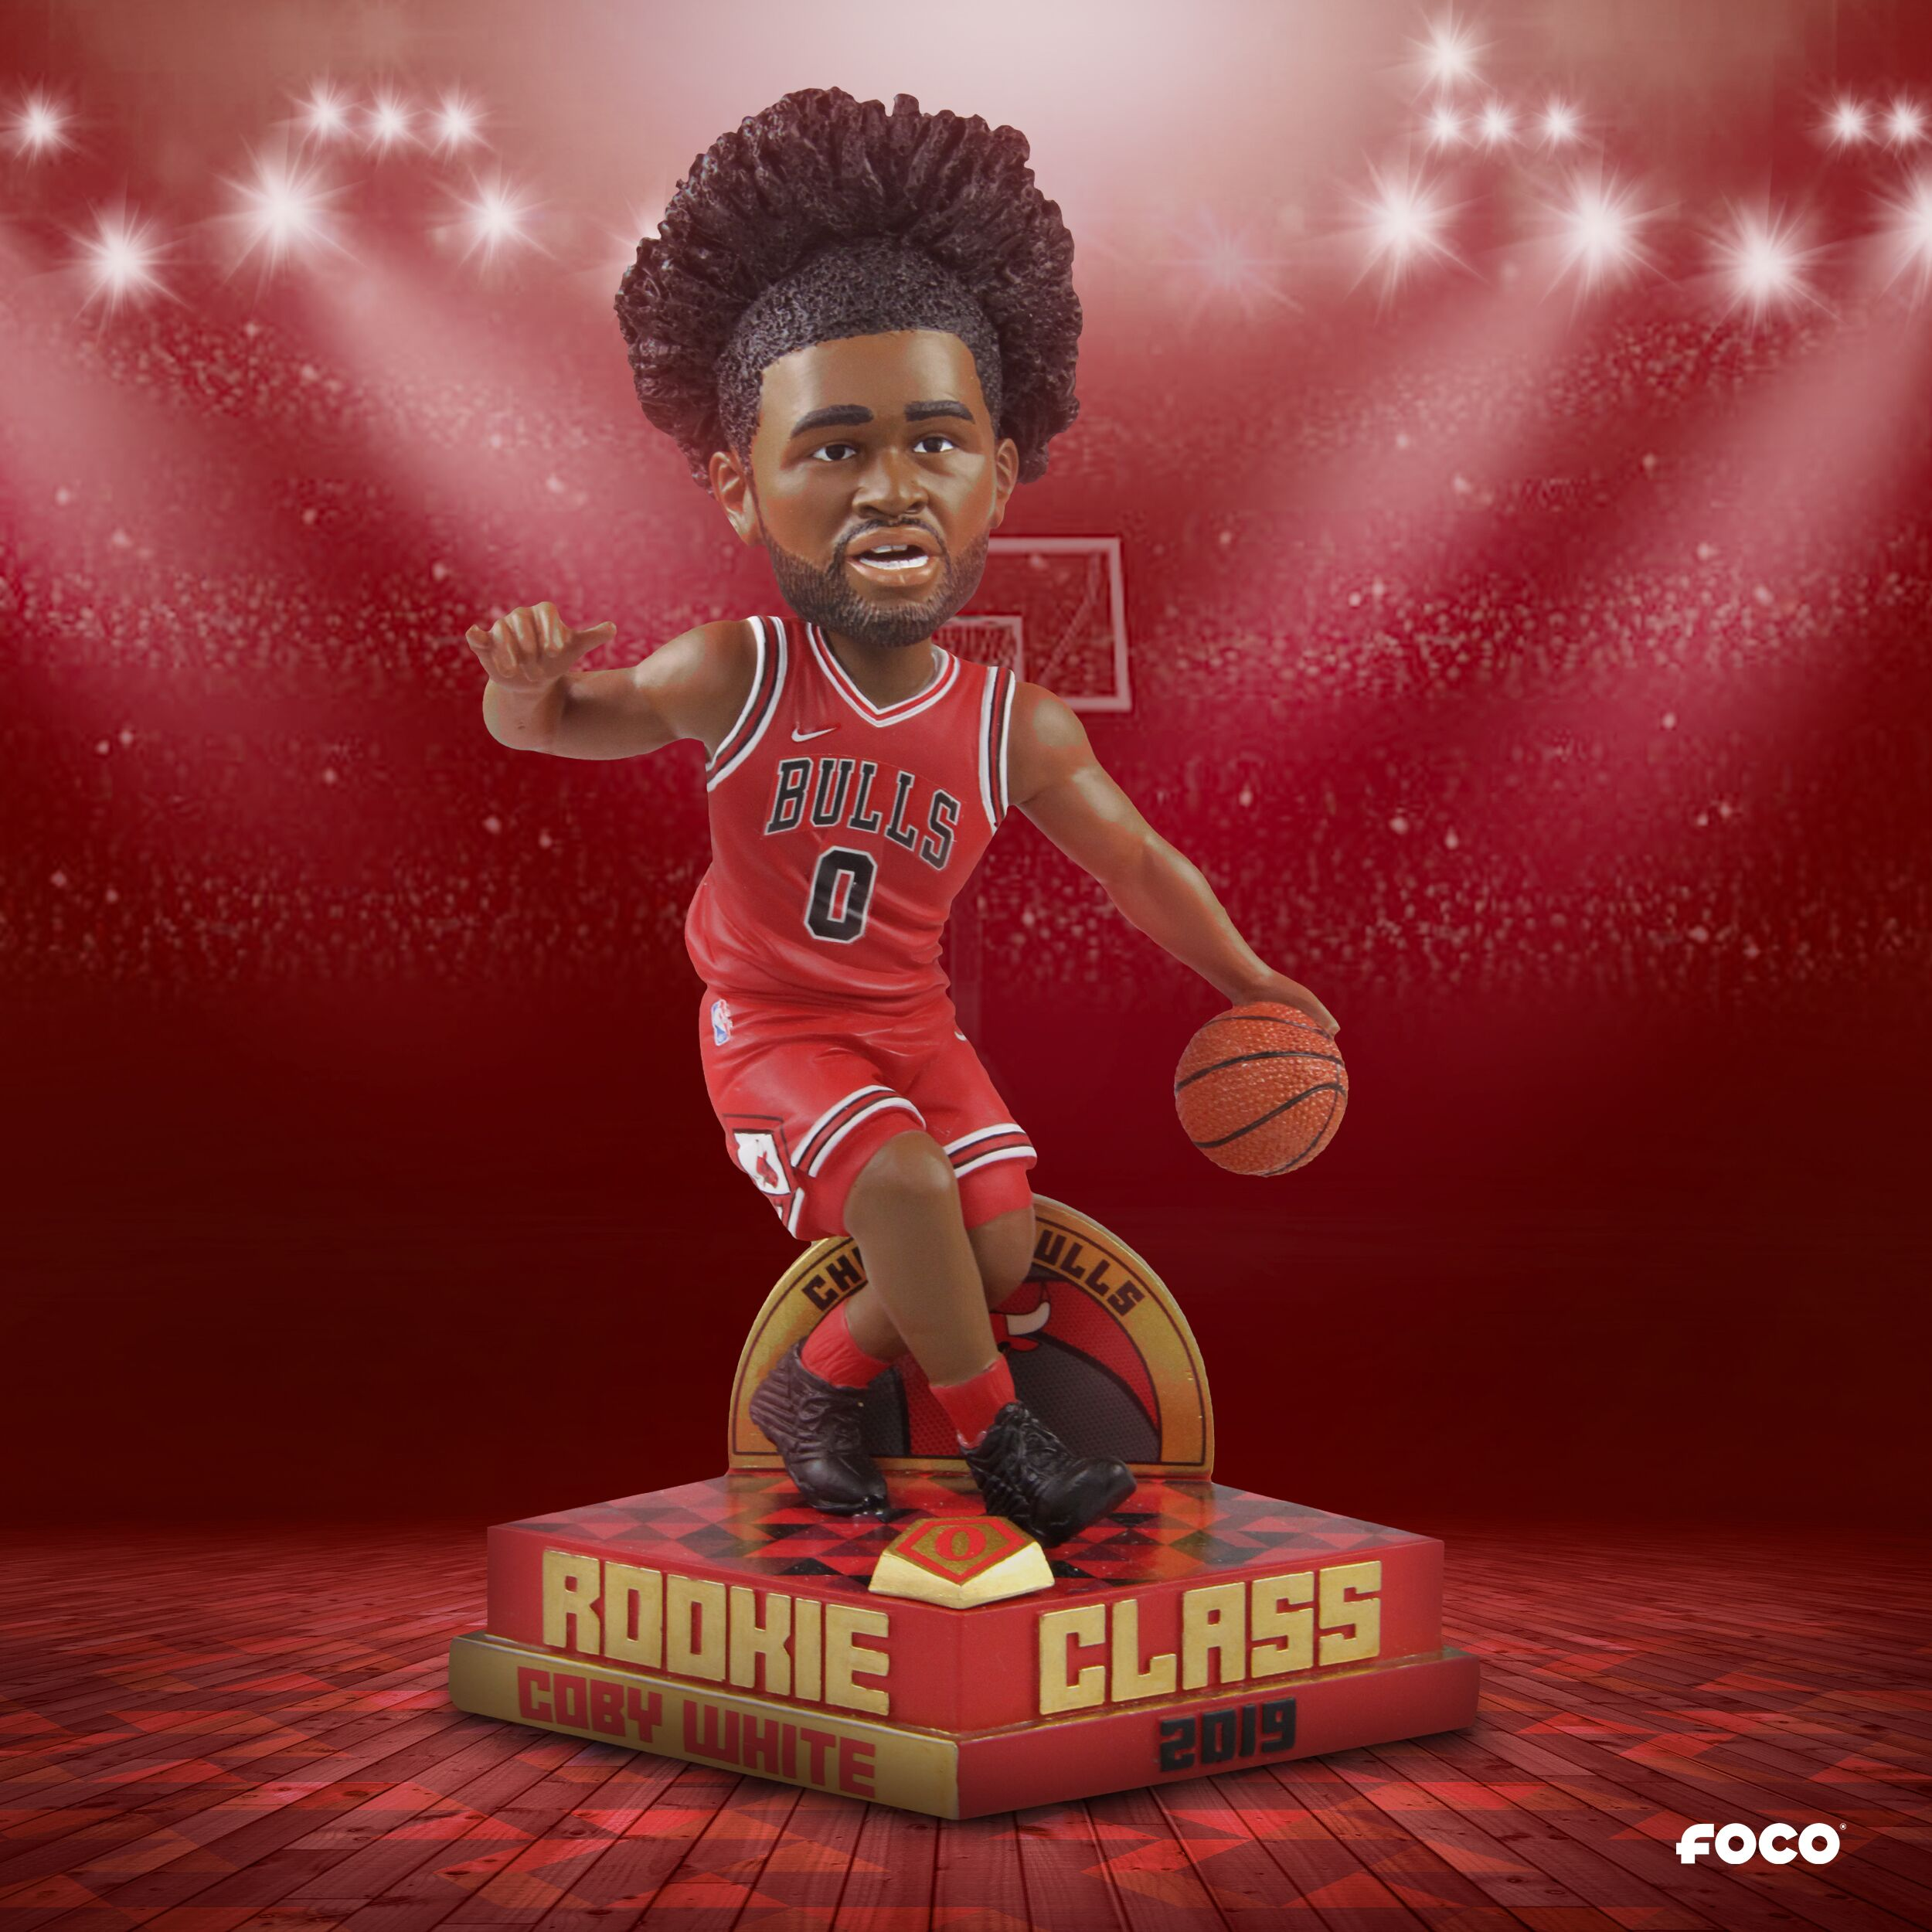 Chicago Bulls fans need this Coby White bobblehead